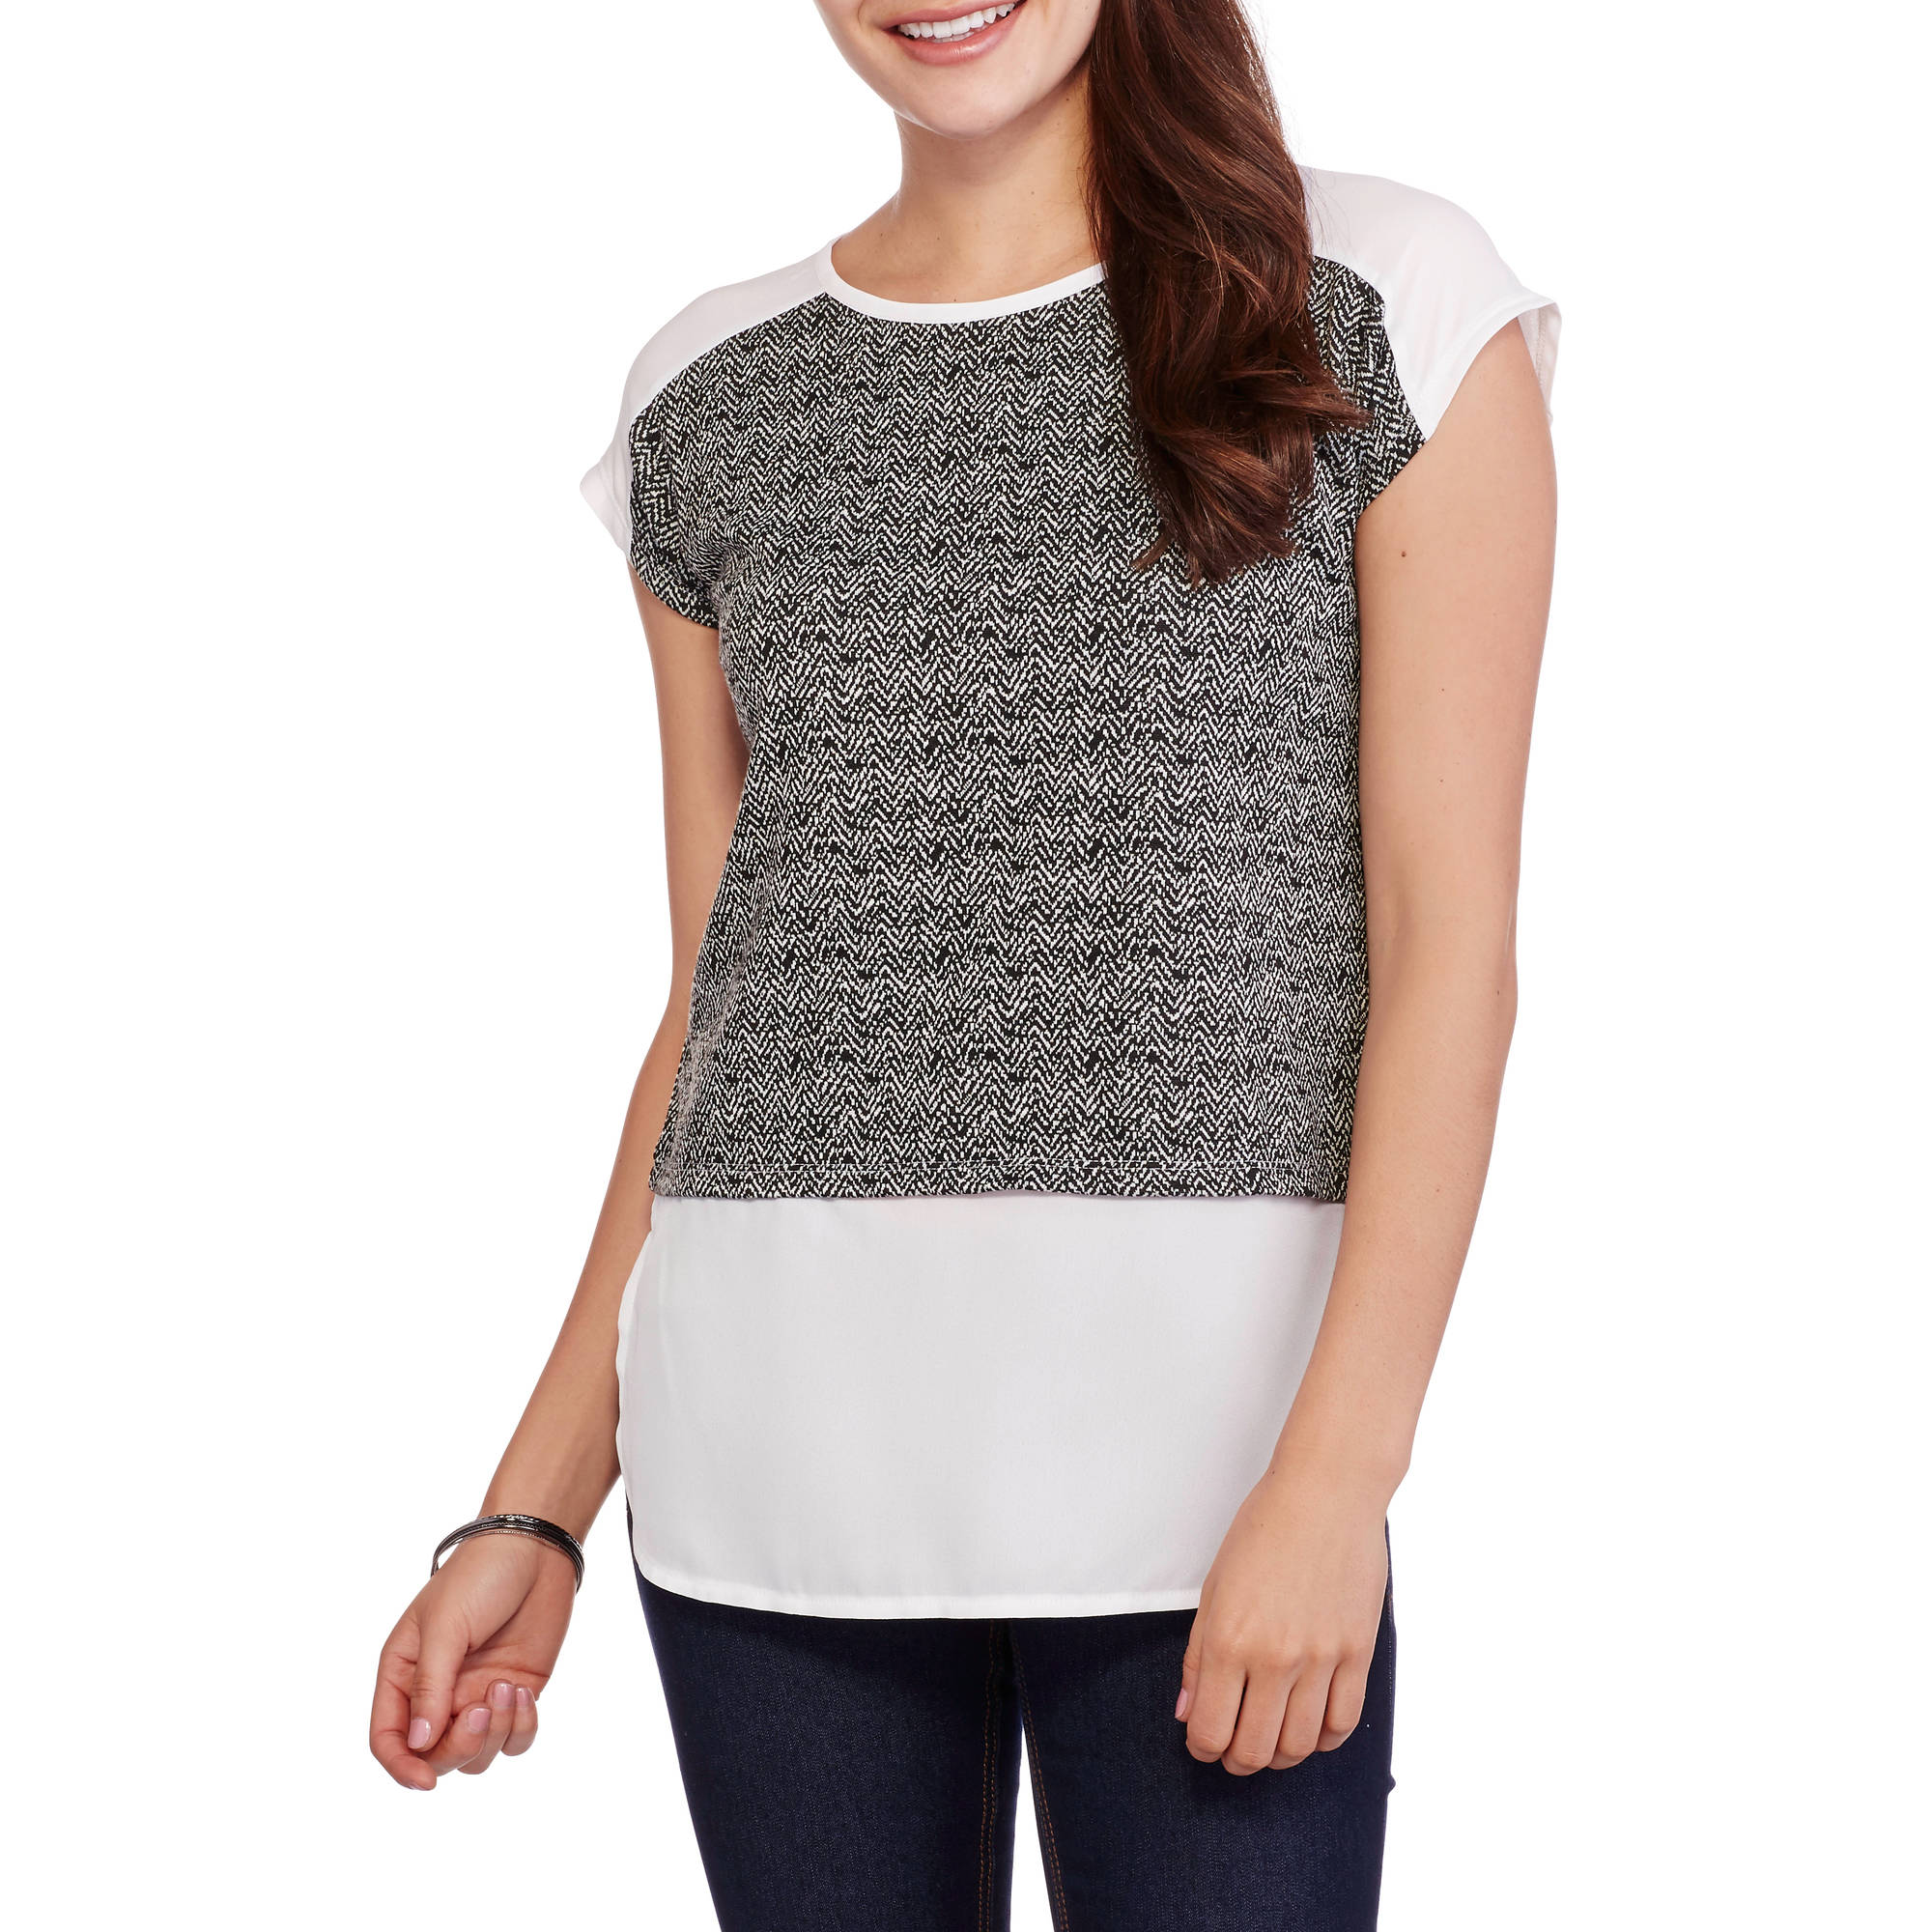 Concepts Women's Textured Top with Sleek Woven Inset